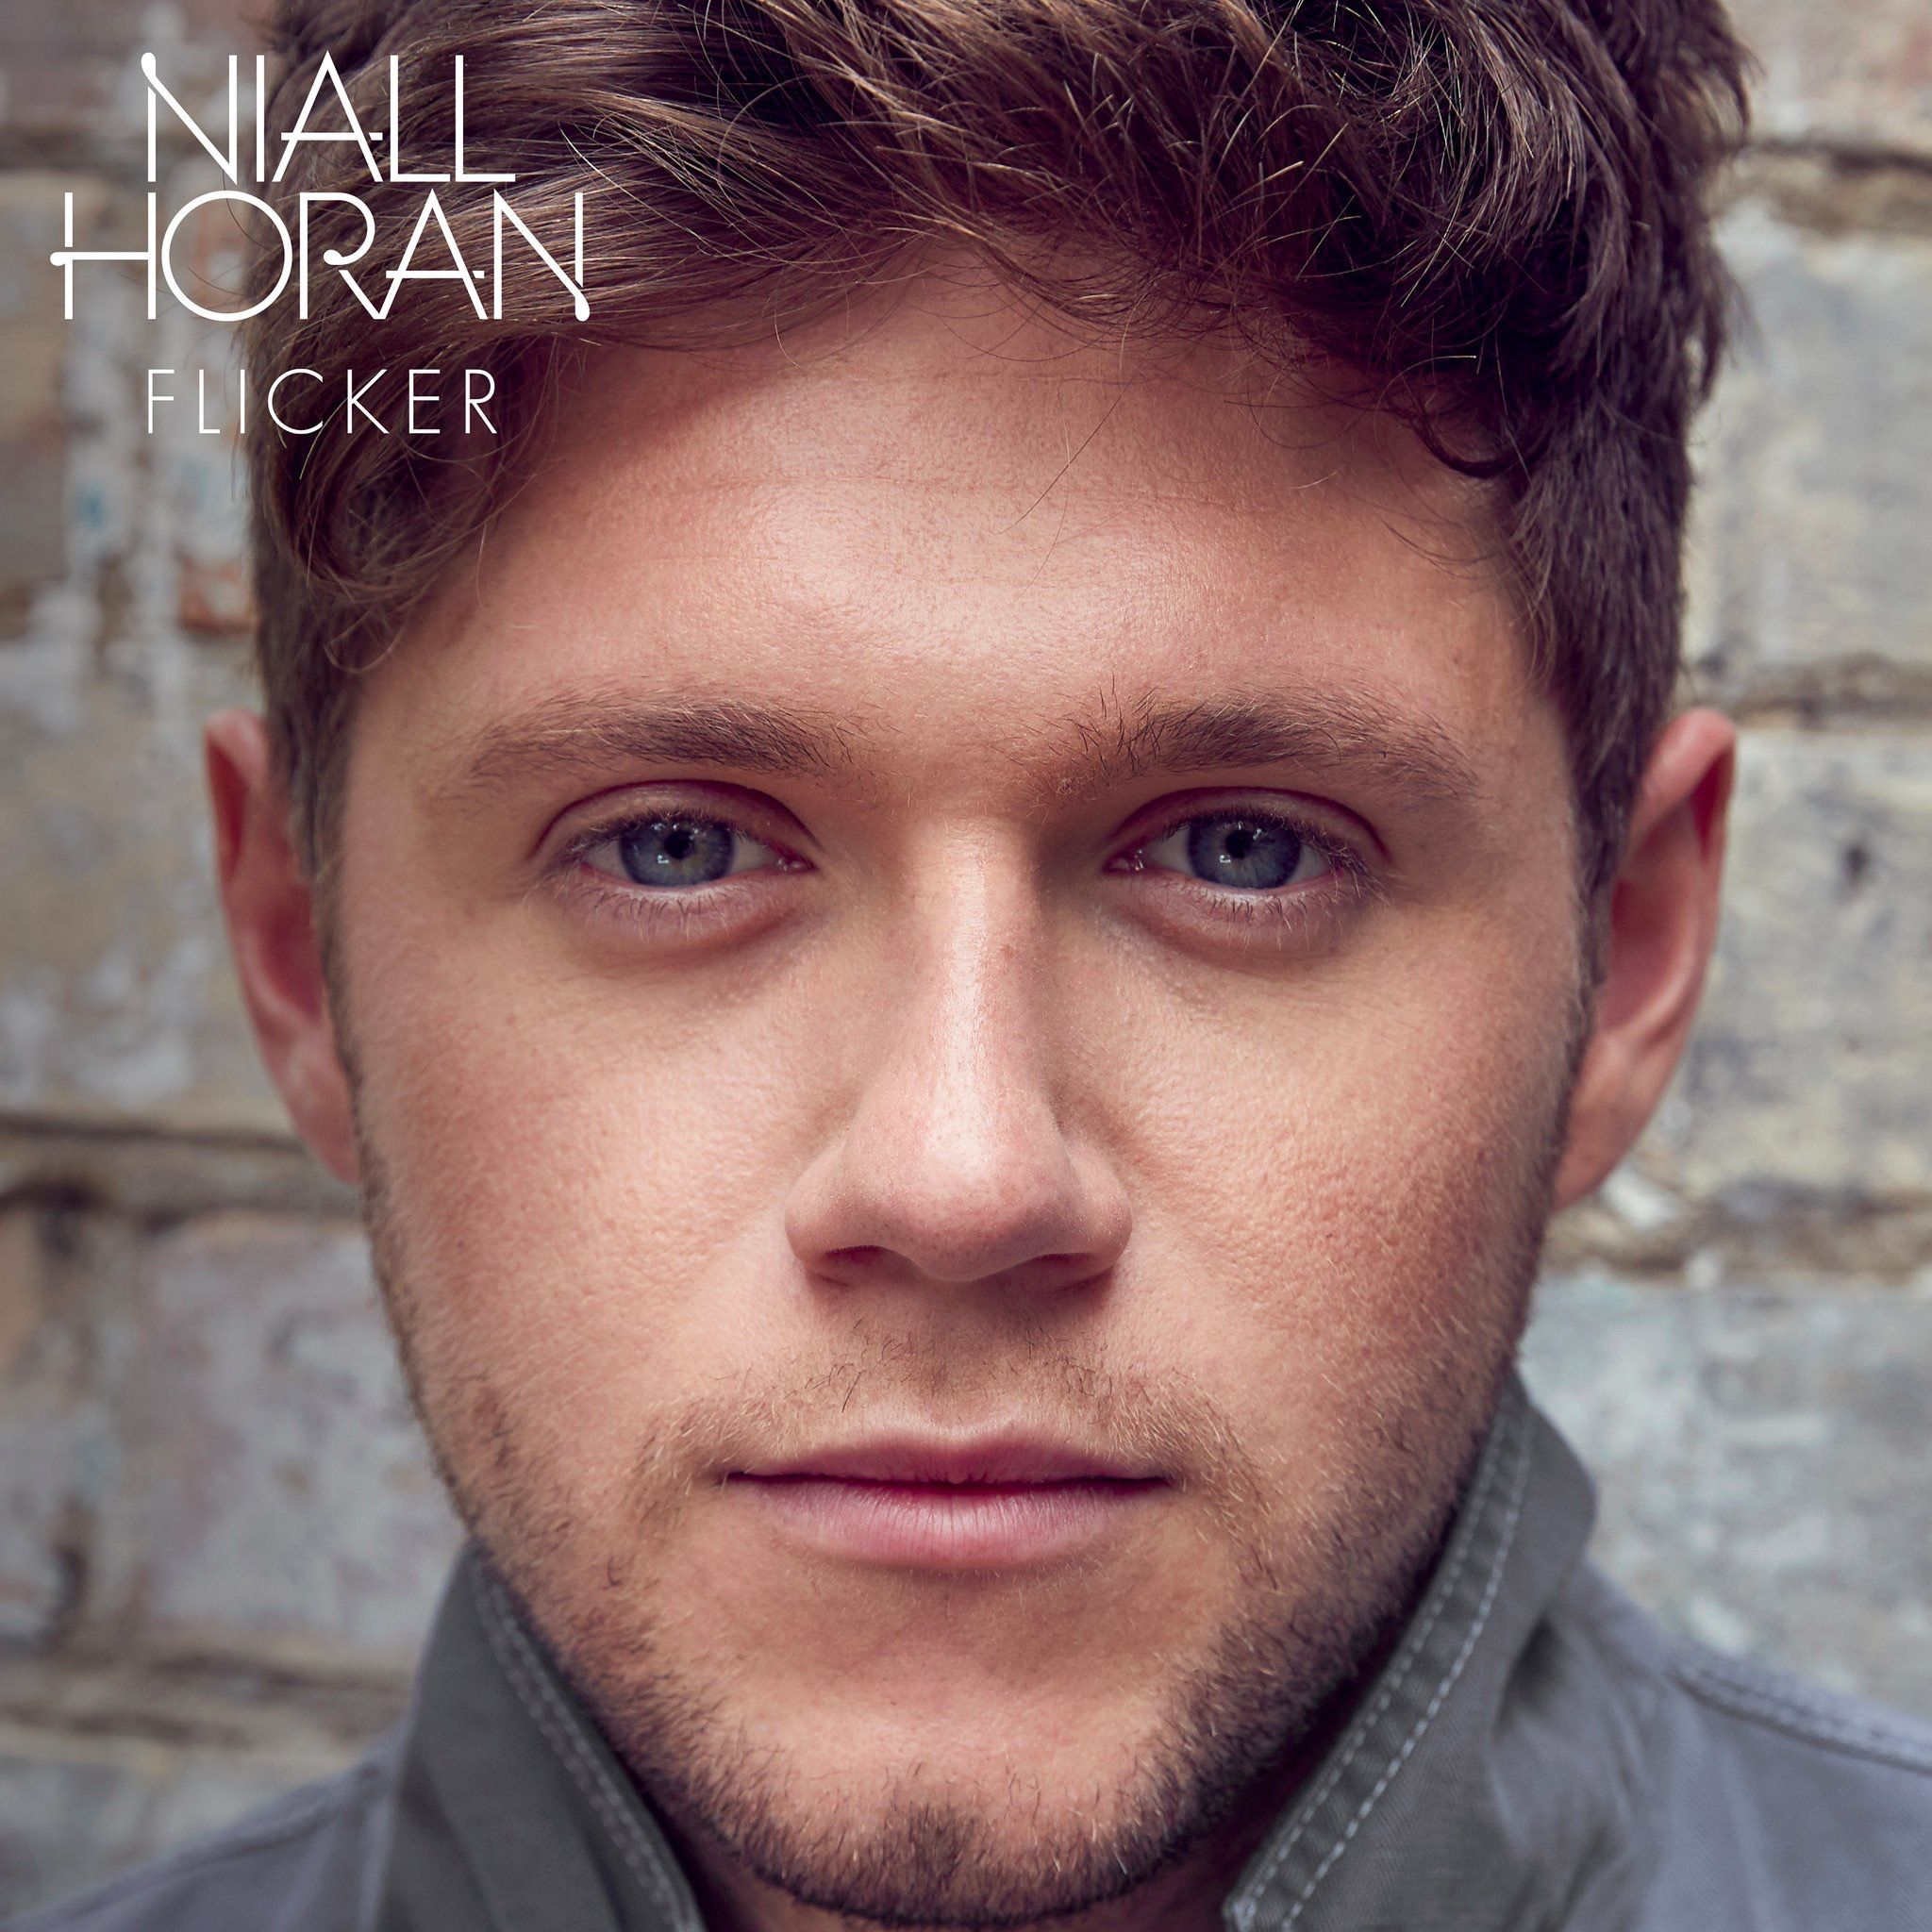 Image result for flicker album cover